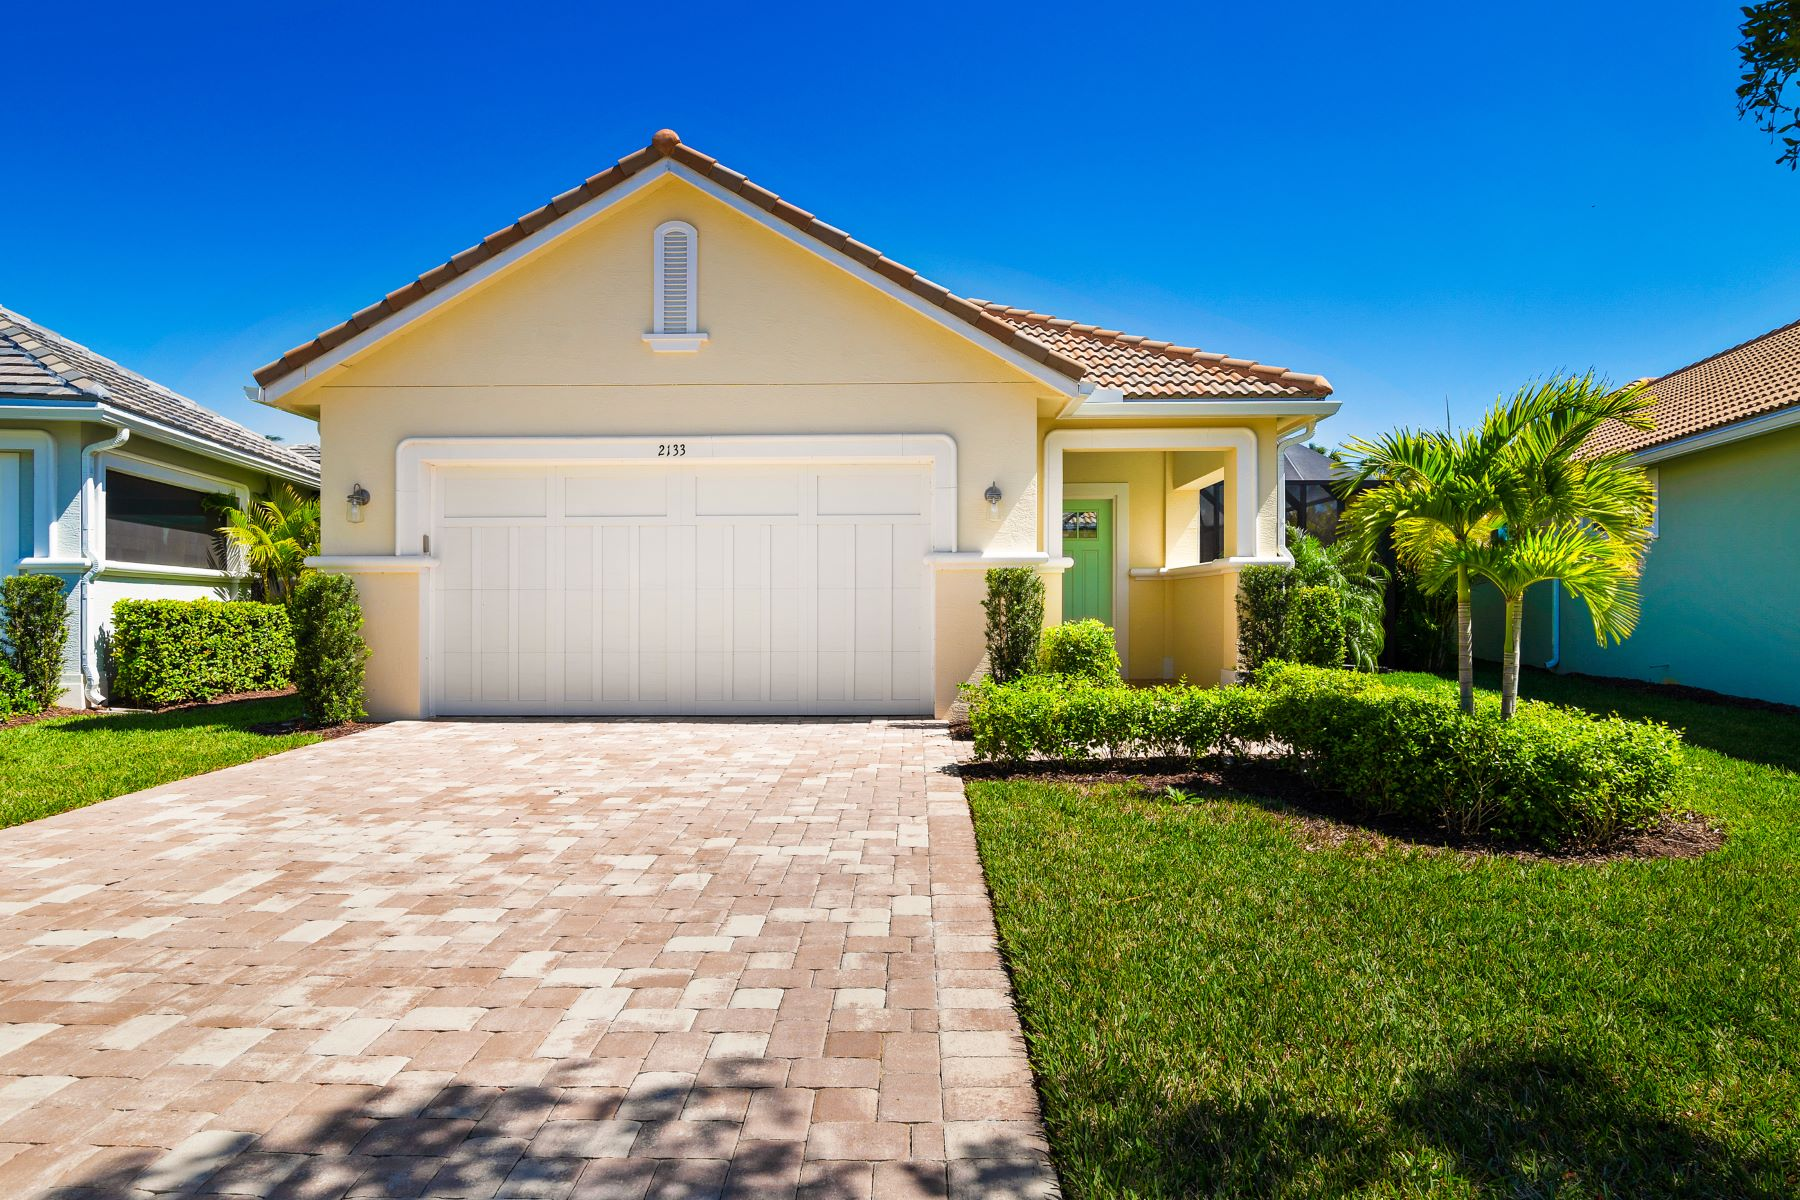 Single Family Home for Sale at Courtyard Pool Home 2133 Falls Circle Vero Beach, Florida 32967 United States